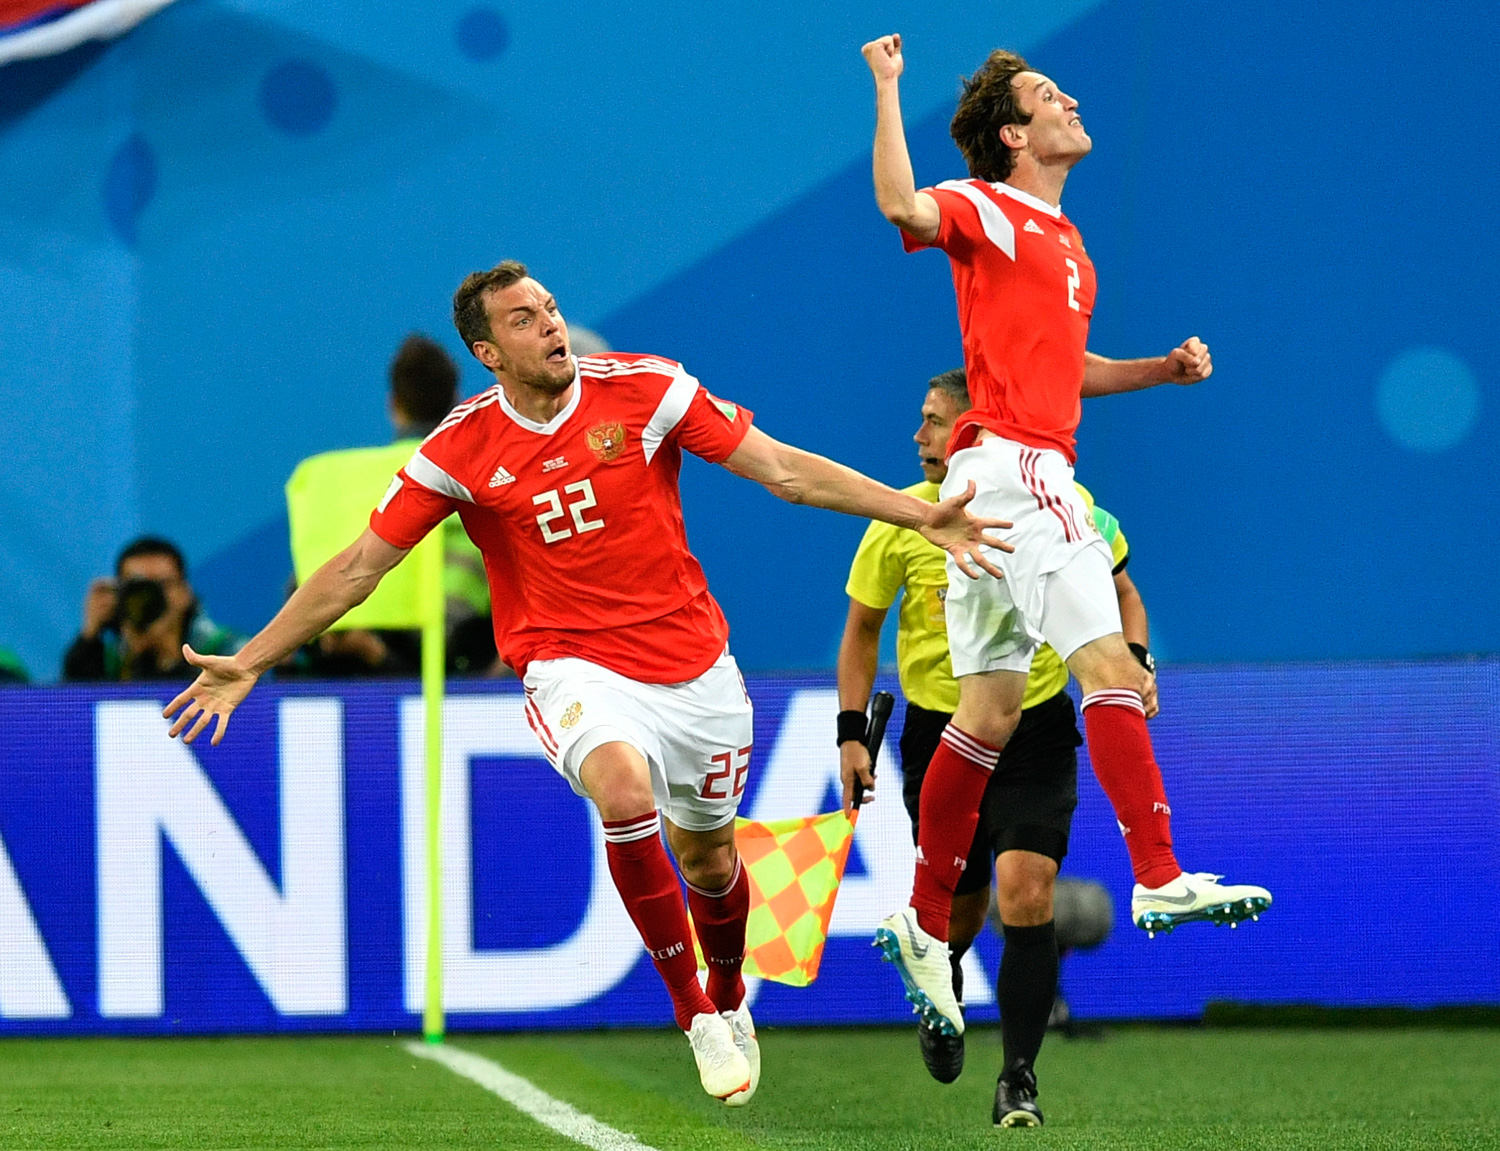 <div class='meta'><div class='origin-logo' data-origin='none'></div><span class='caption-text' data-credit='Martin Meissner/AP'>Russia's Artyom Dzyuba, left, celebrates with Russia's Mario Fernandes , right, after scoring his side's third goal during the group A match between Russia and Egypt</span></div>